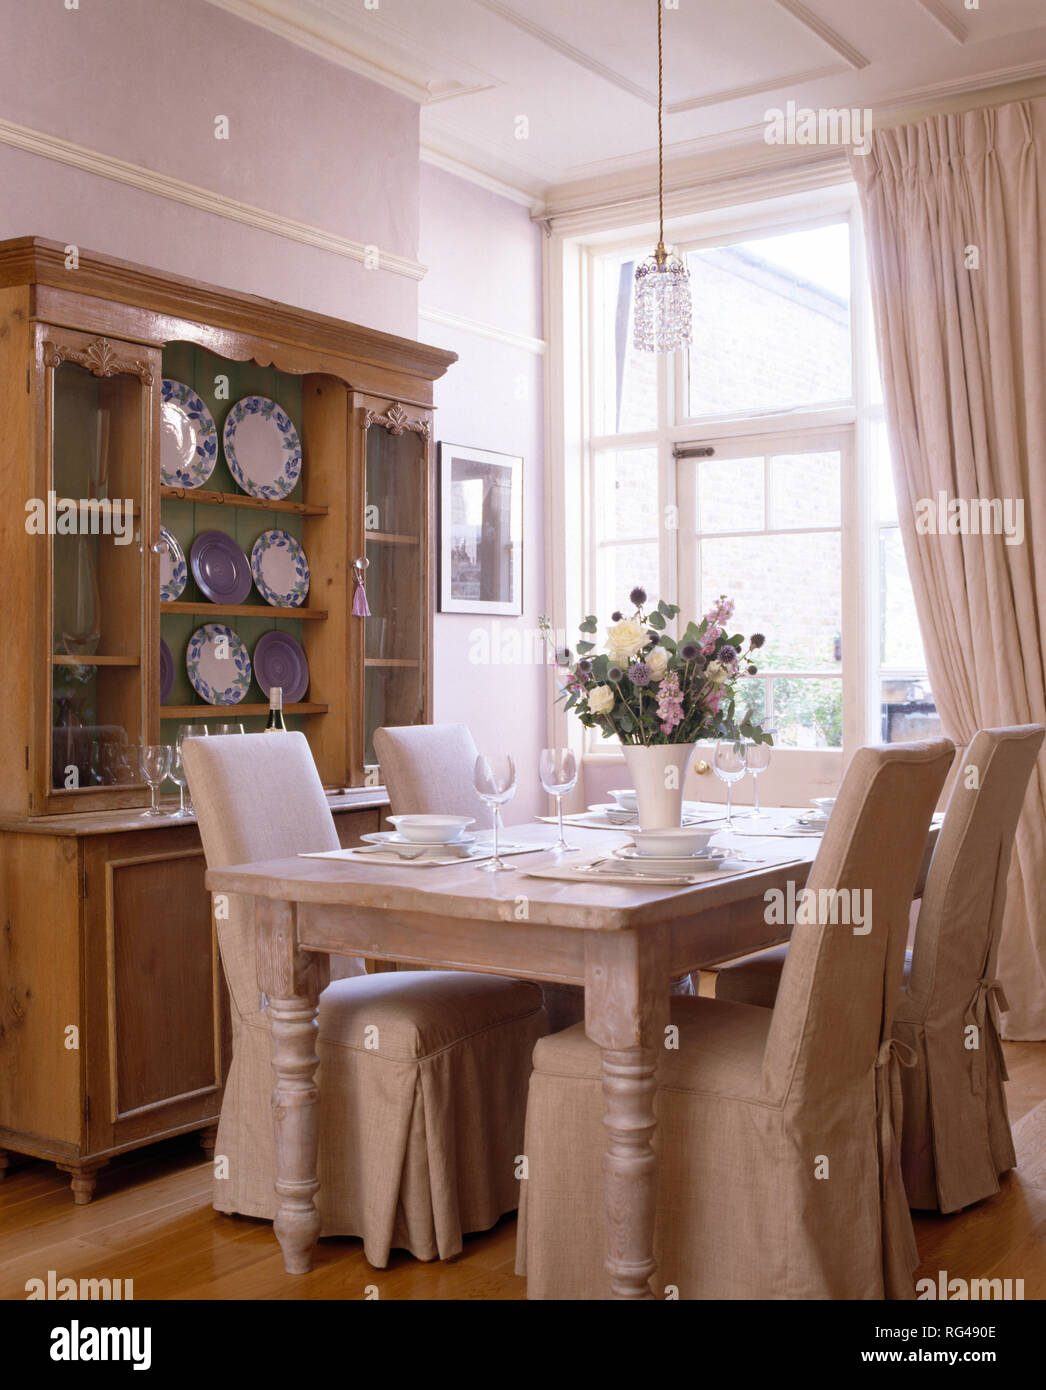 Cream Slip Covers On Chairs At Table In White Dining Room Stock Photo Alamy